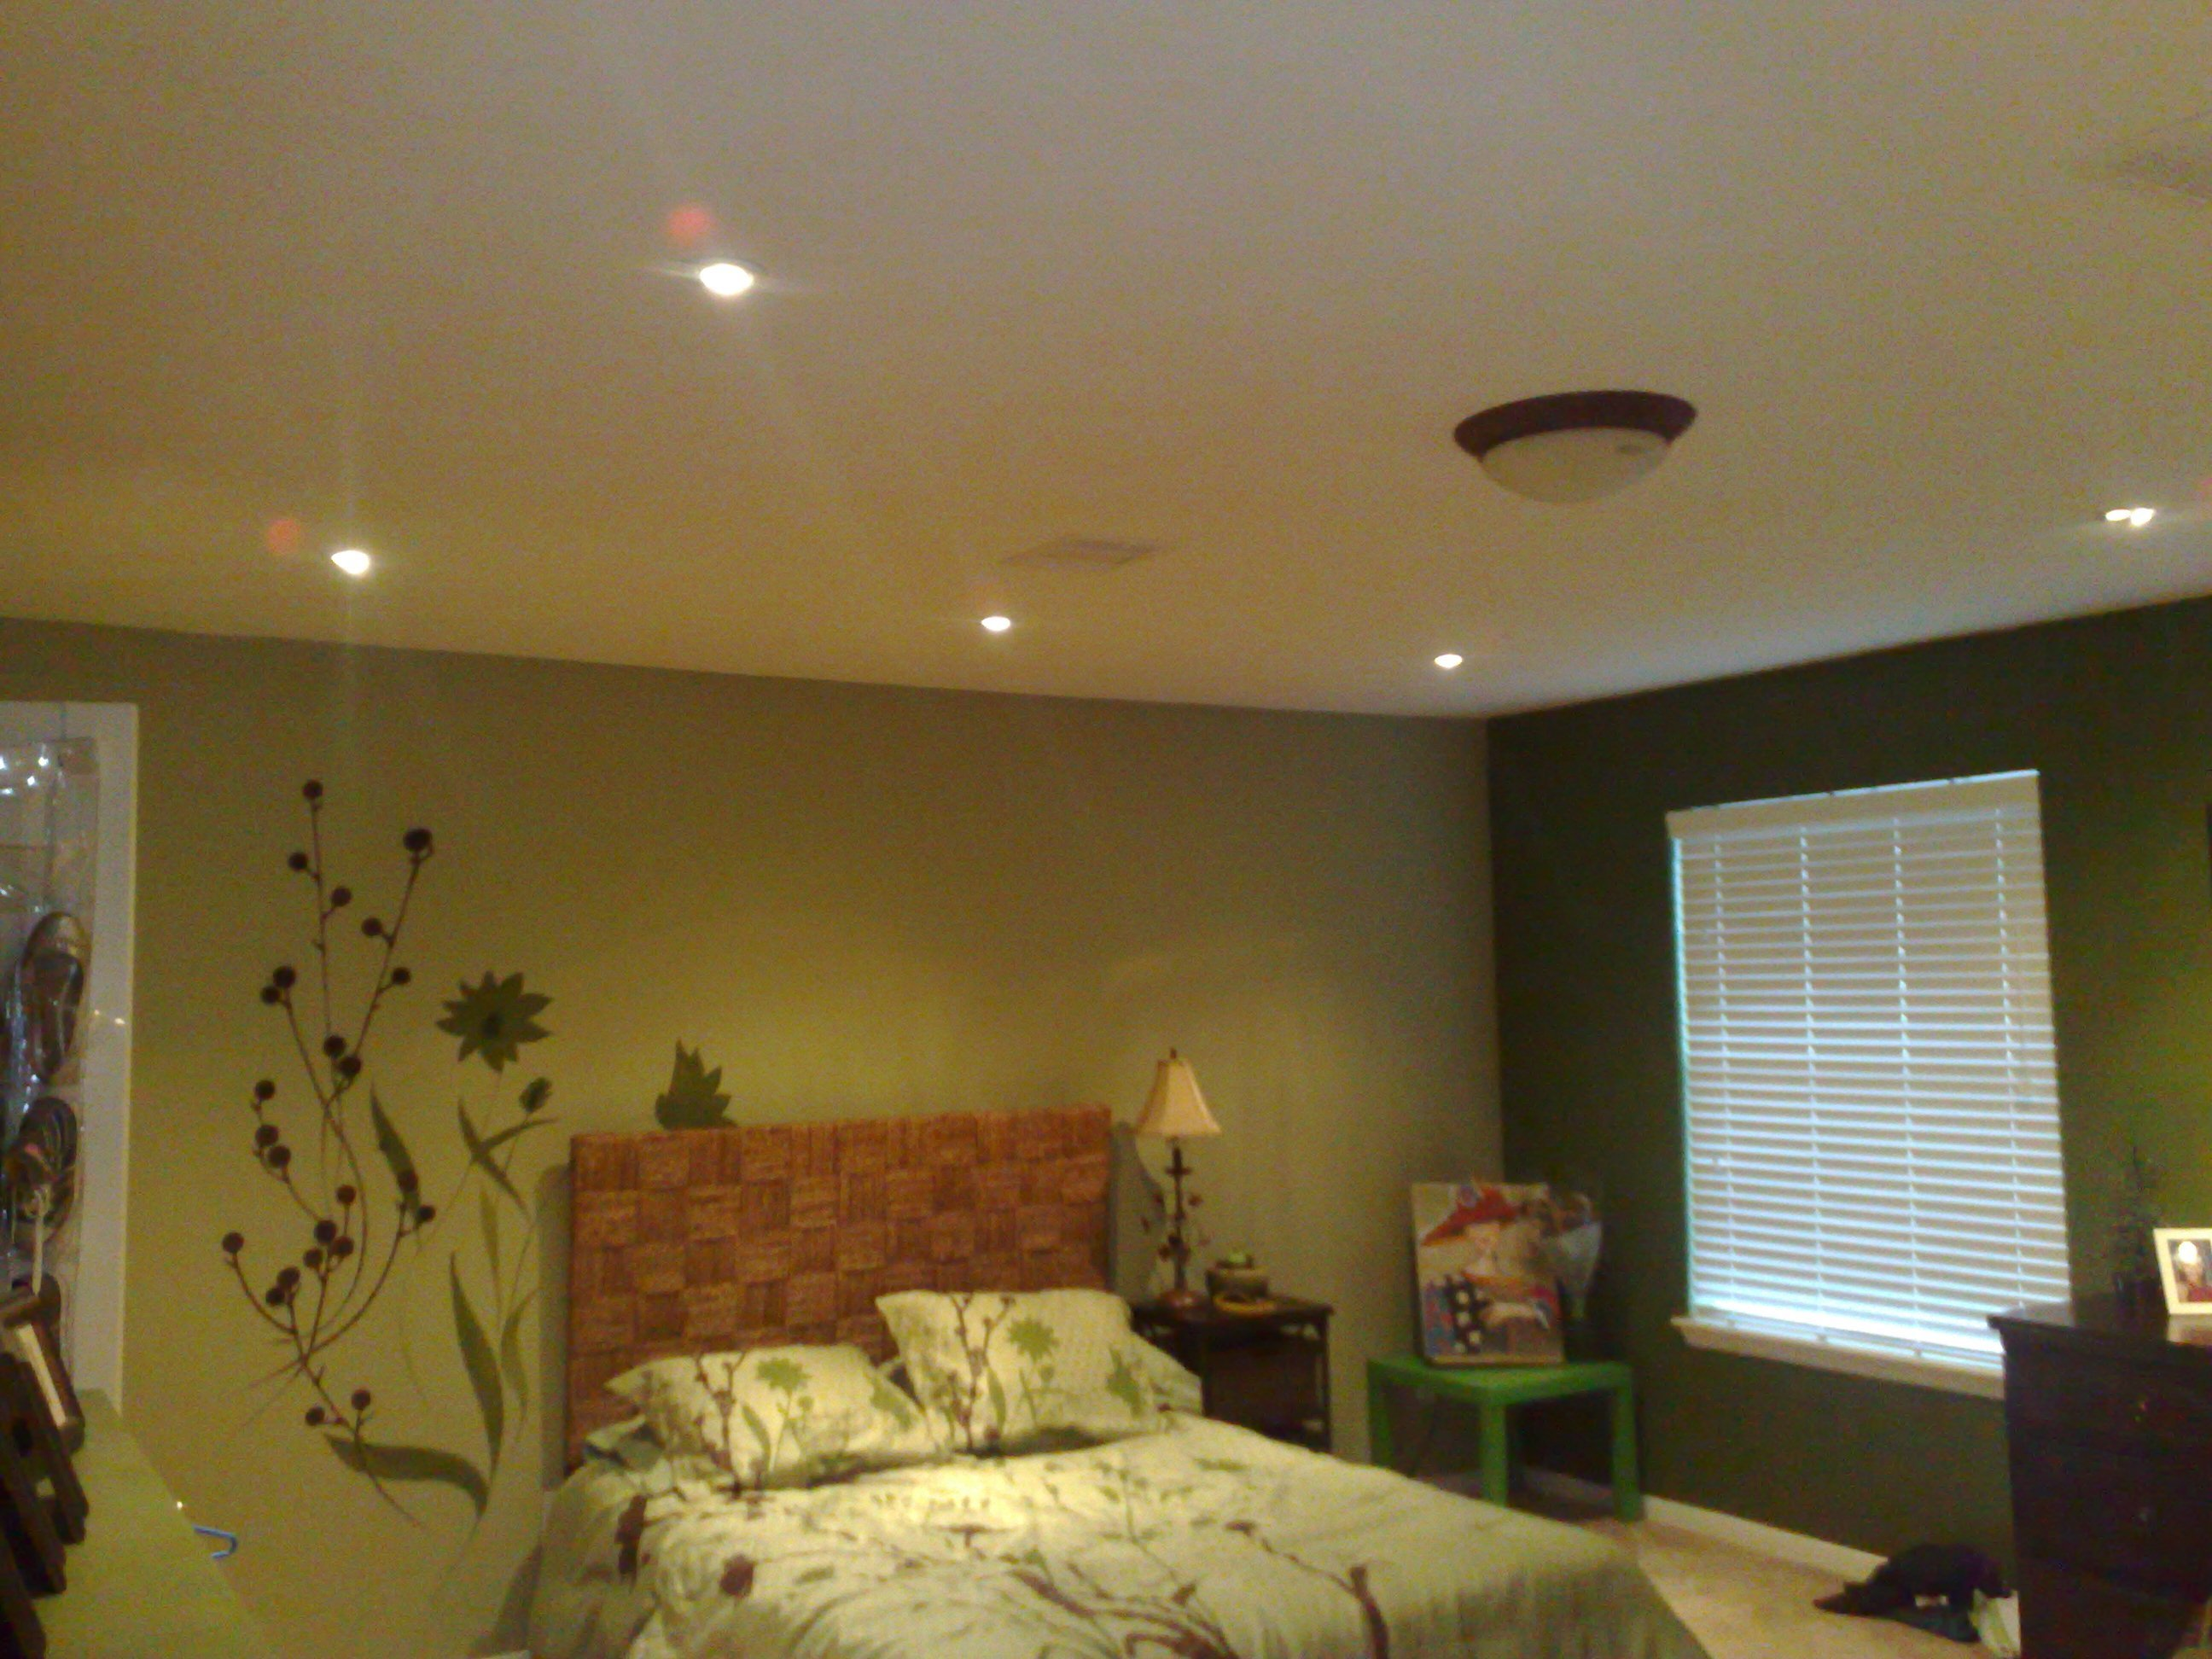 Best Nrg Electrical Services Residential Commercial 24 7 With Pictures